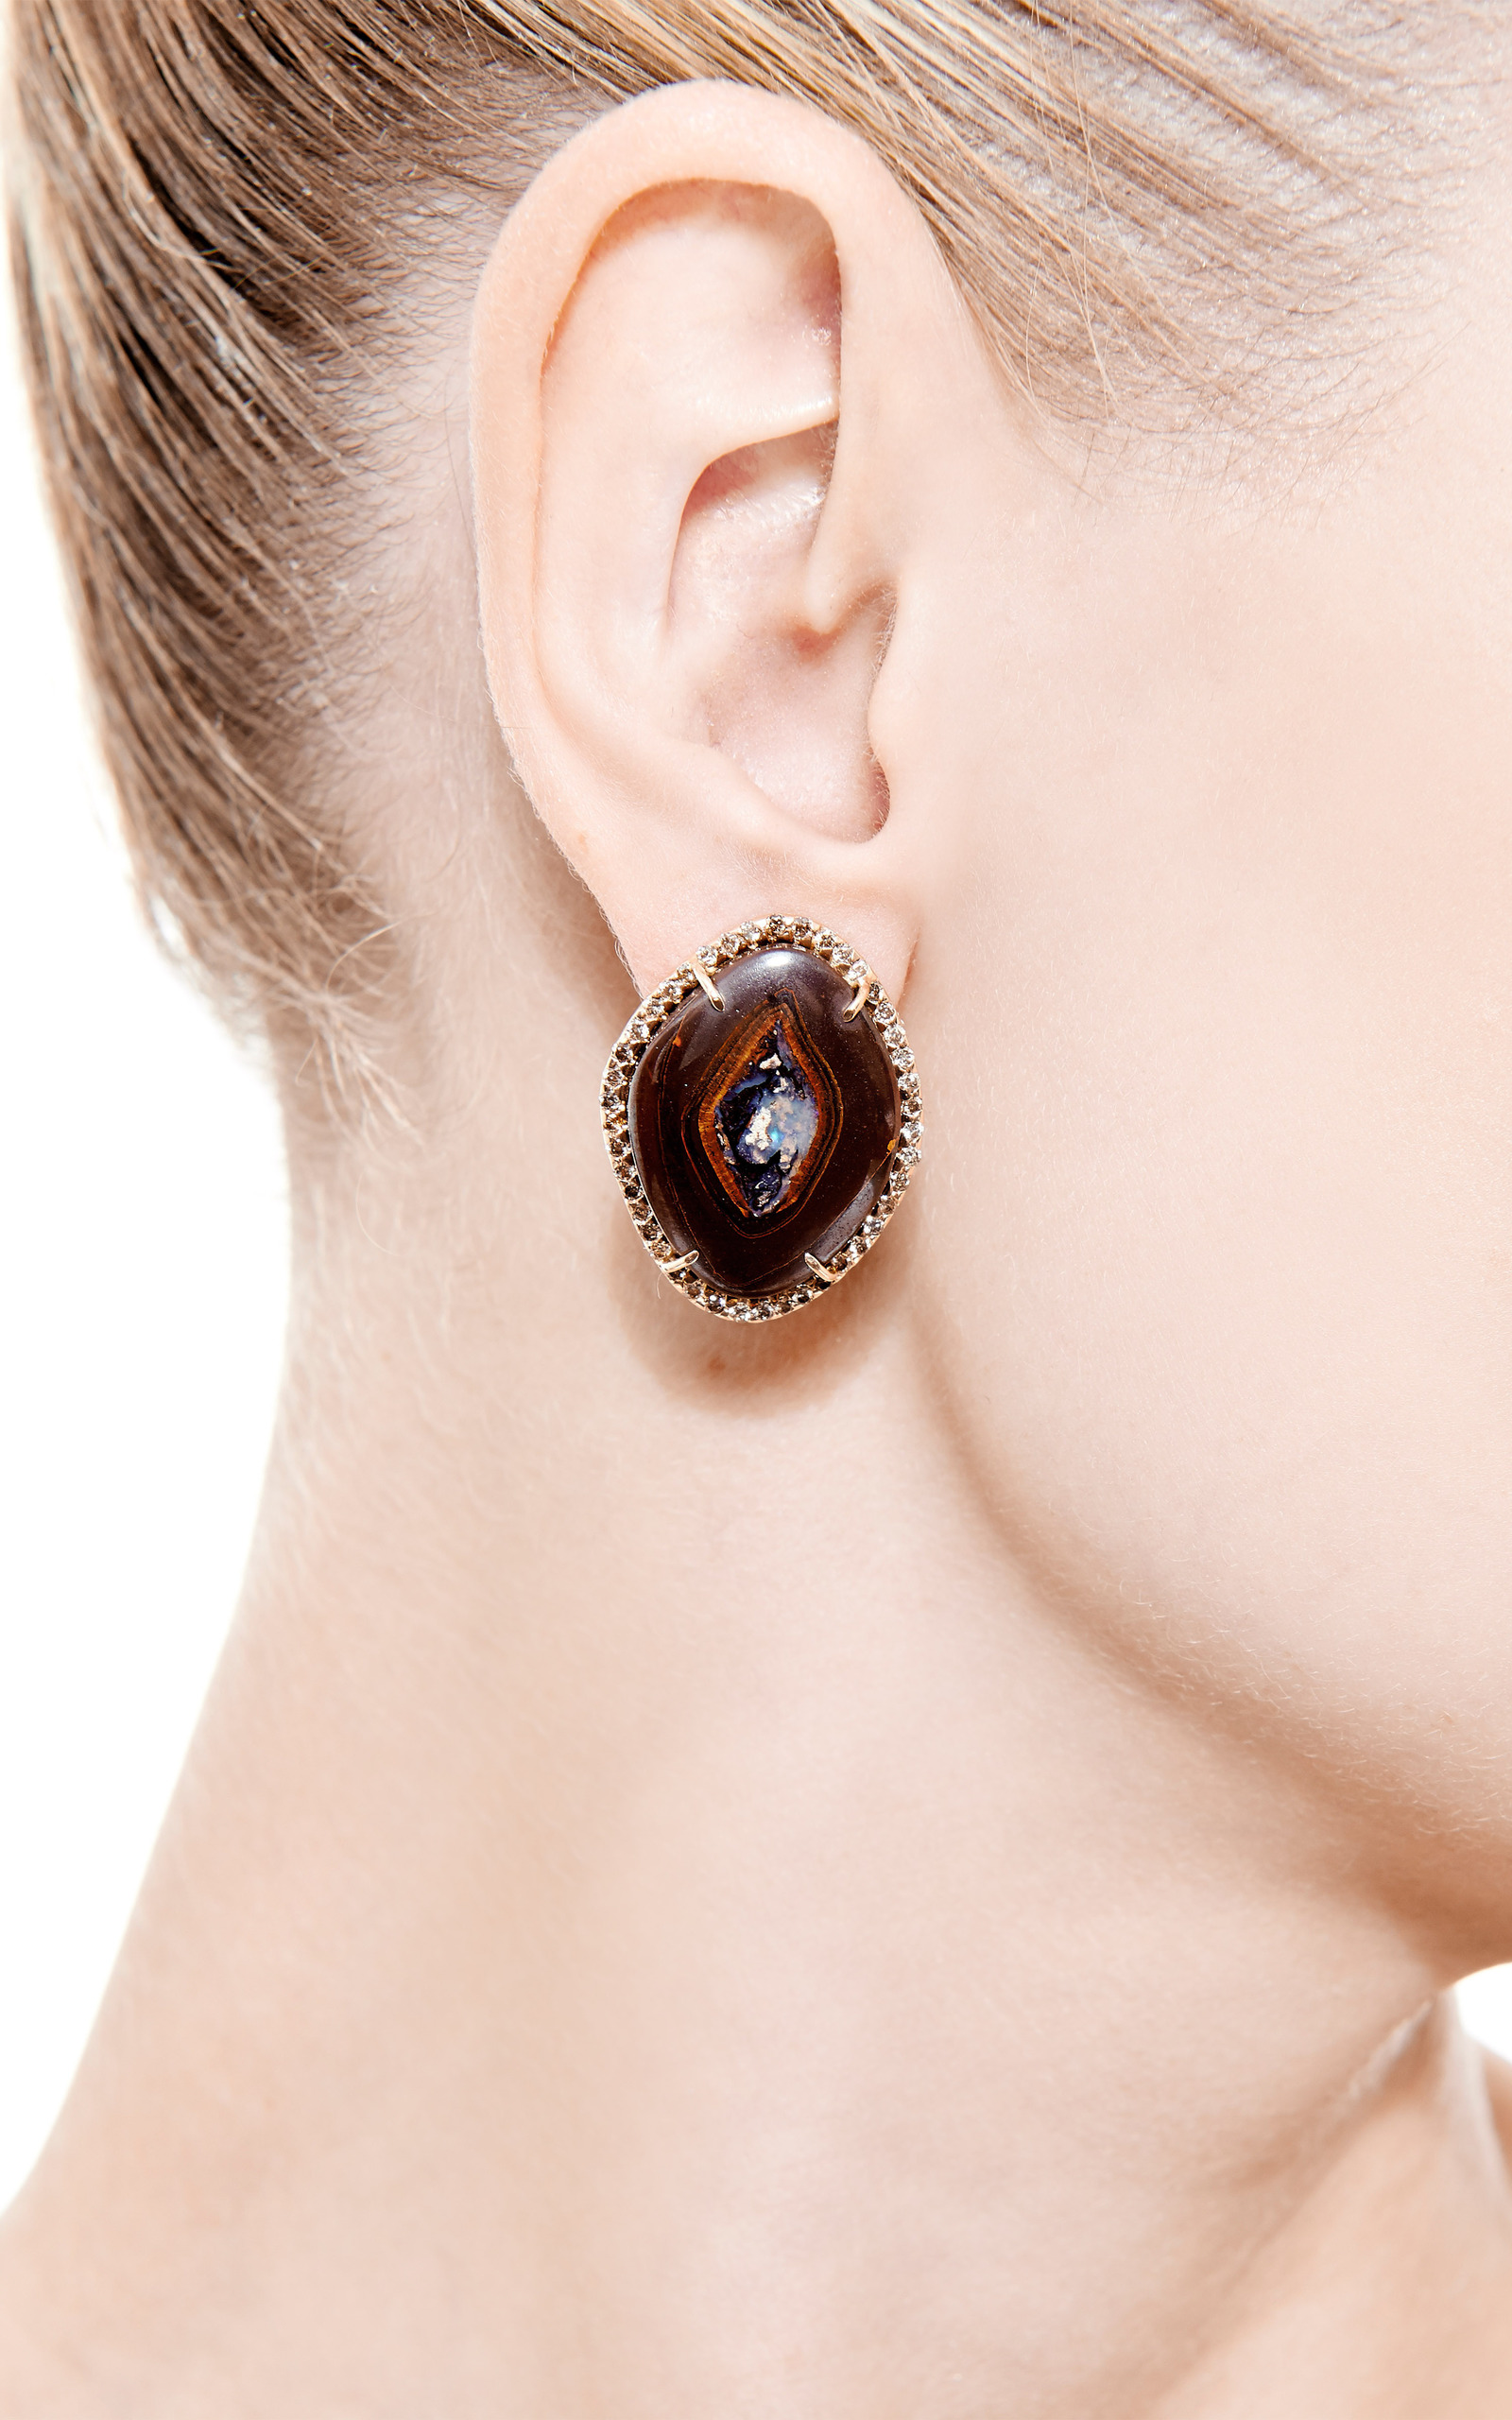 brown archives stud limited product edition diamond collection flower shaped jewellery earrings rionore antwerp lily category